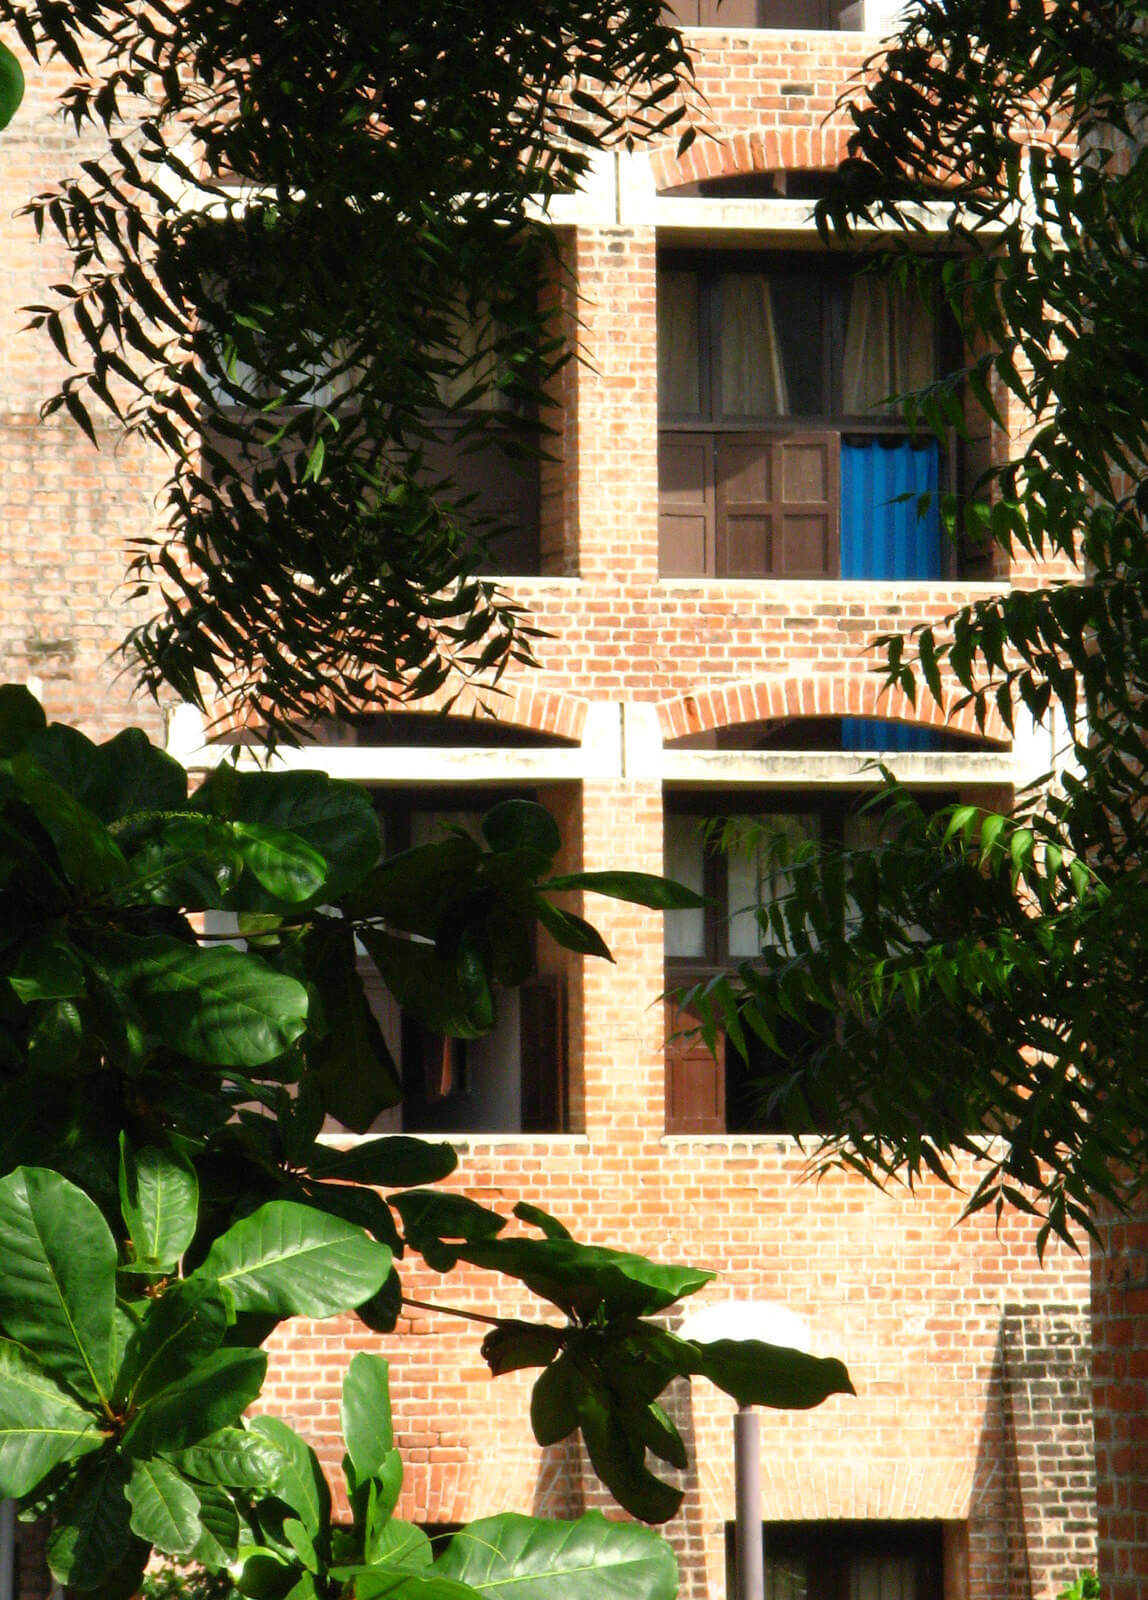 The 18 dormitories in the campus are a part of the whole and demonstrate the idea of 'between spaces' | IIM Ahmedabad Demolition | Prof Jaimini Mehta | STIRworld